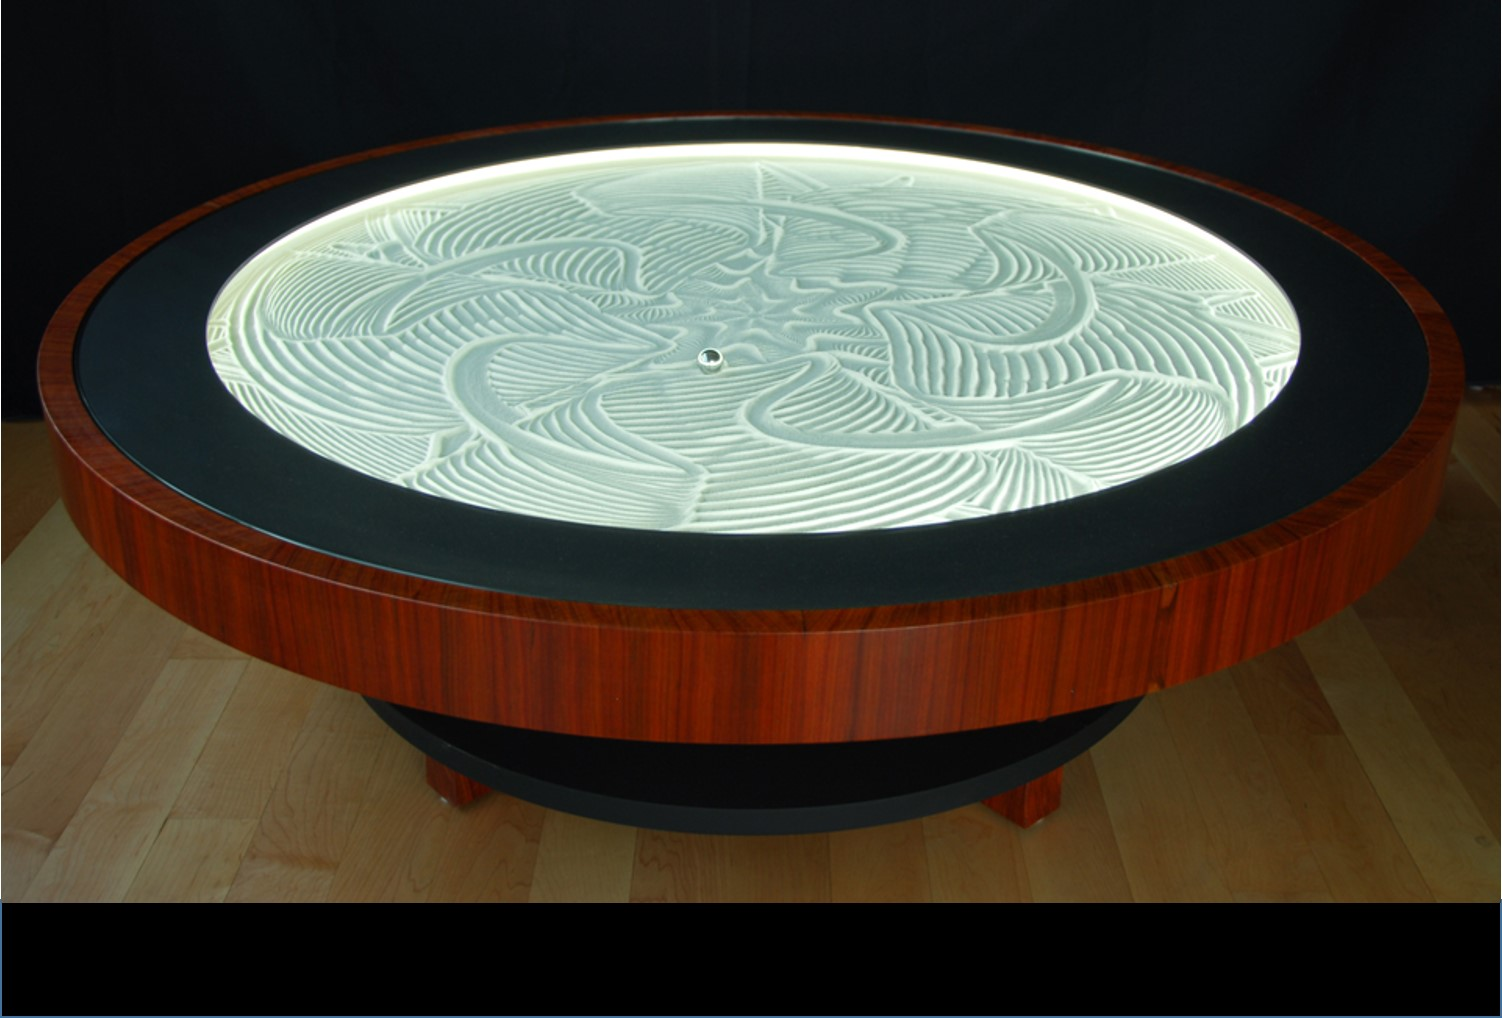 This Stunning Self-Sand-Drawing Kinetic Art Table Is About To Nab $2M On Kickstarter